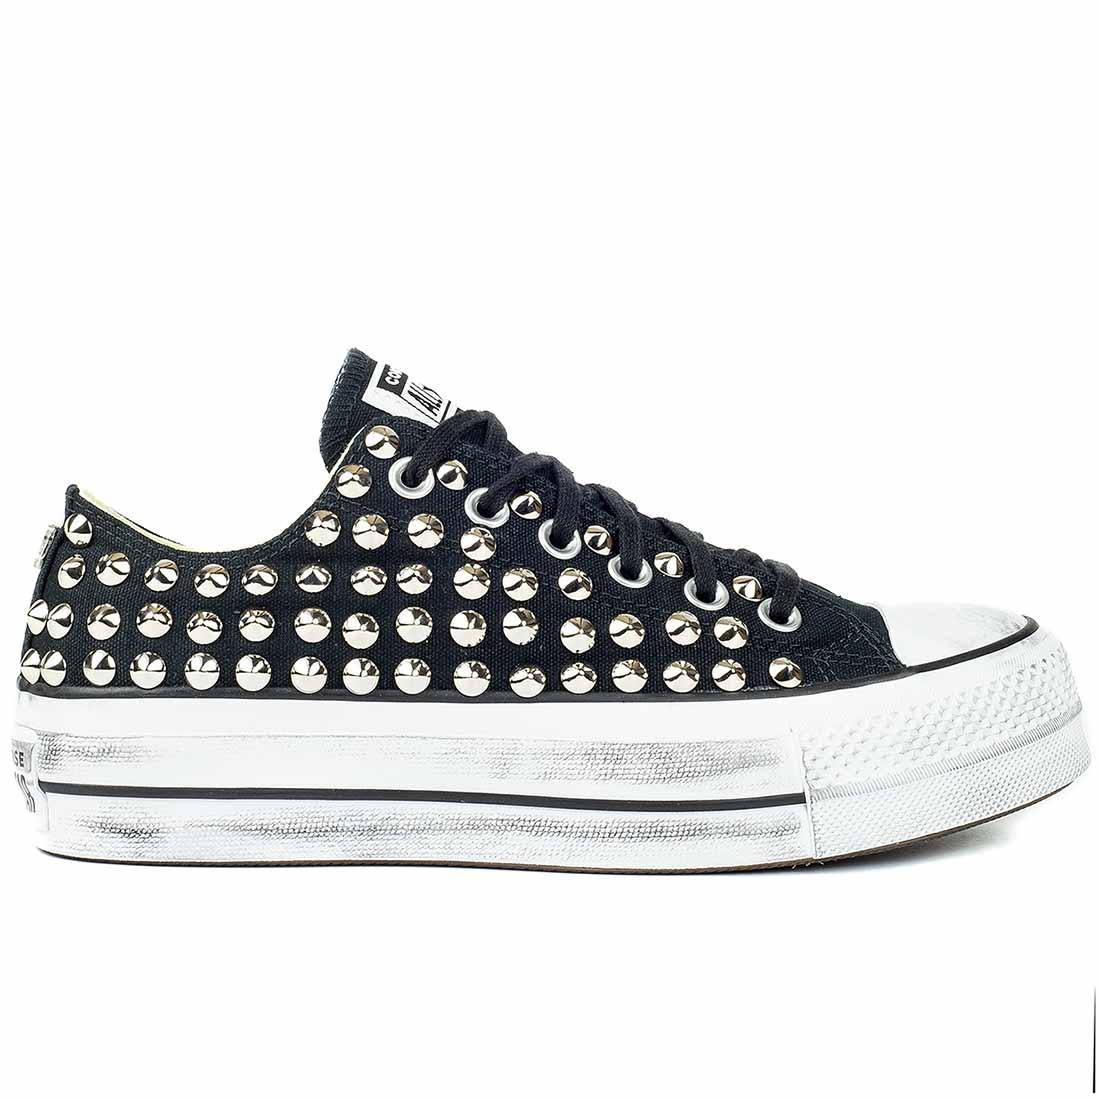 All star con borchie basse converse con la zeppa colore nero custom by Racoon-LAB